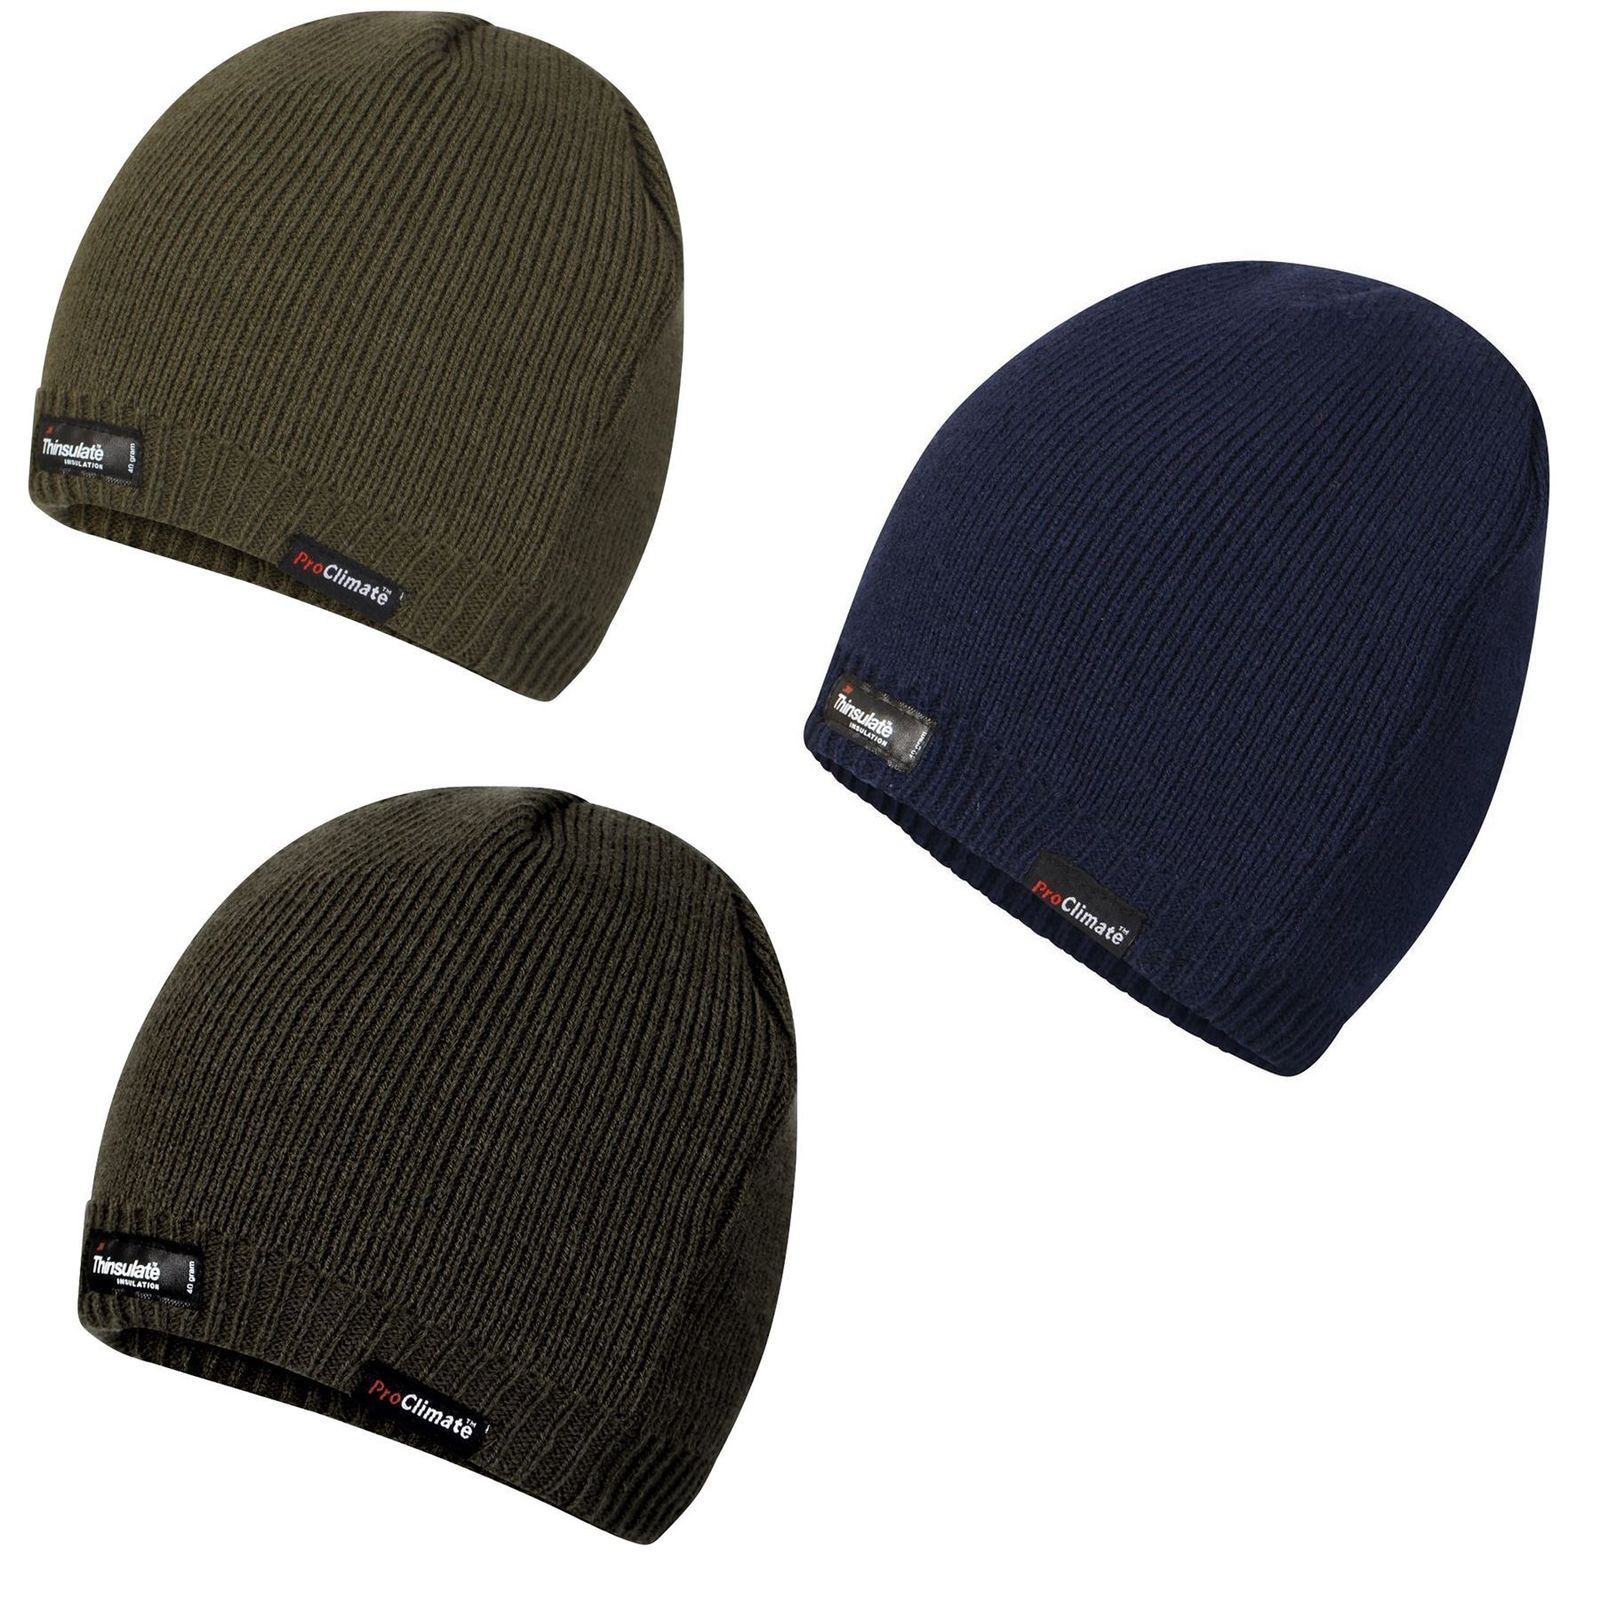 Genuine Thinsulate Lined Mens Warm Knitted Beanie Hat Grey